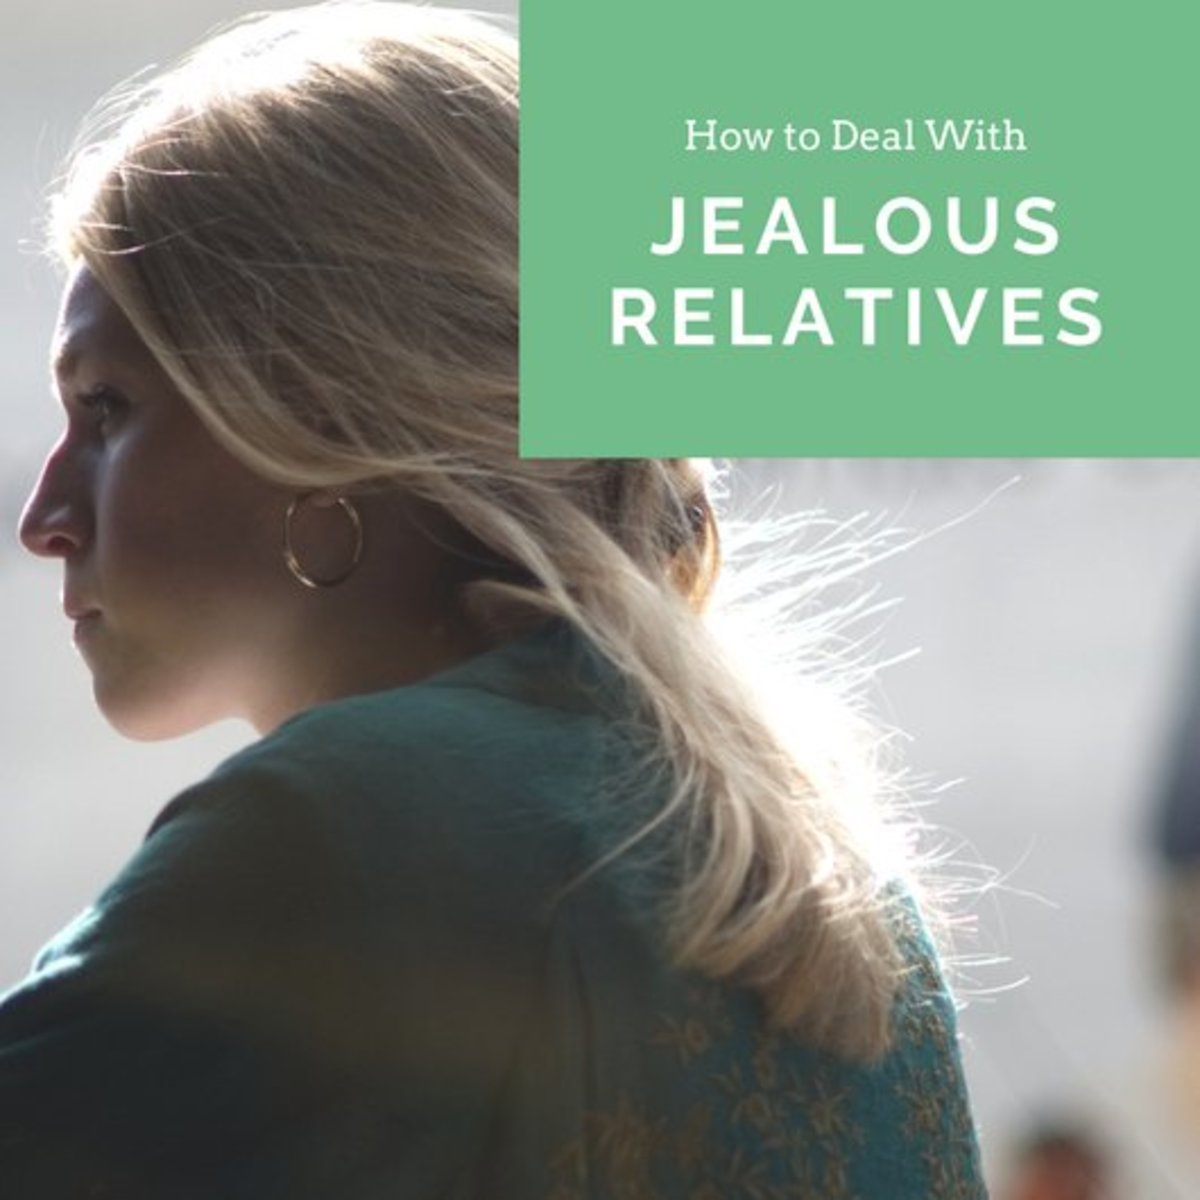 Signs Of Jealous Family Members And How To Deal With Them Wehavekids